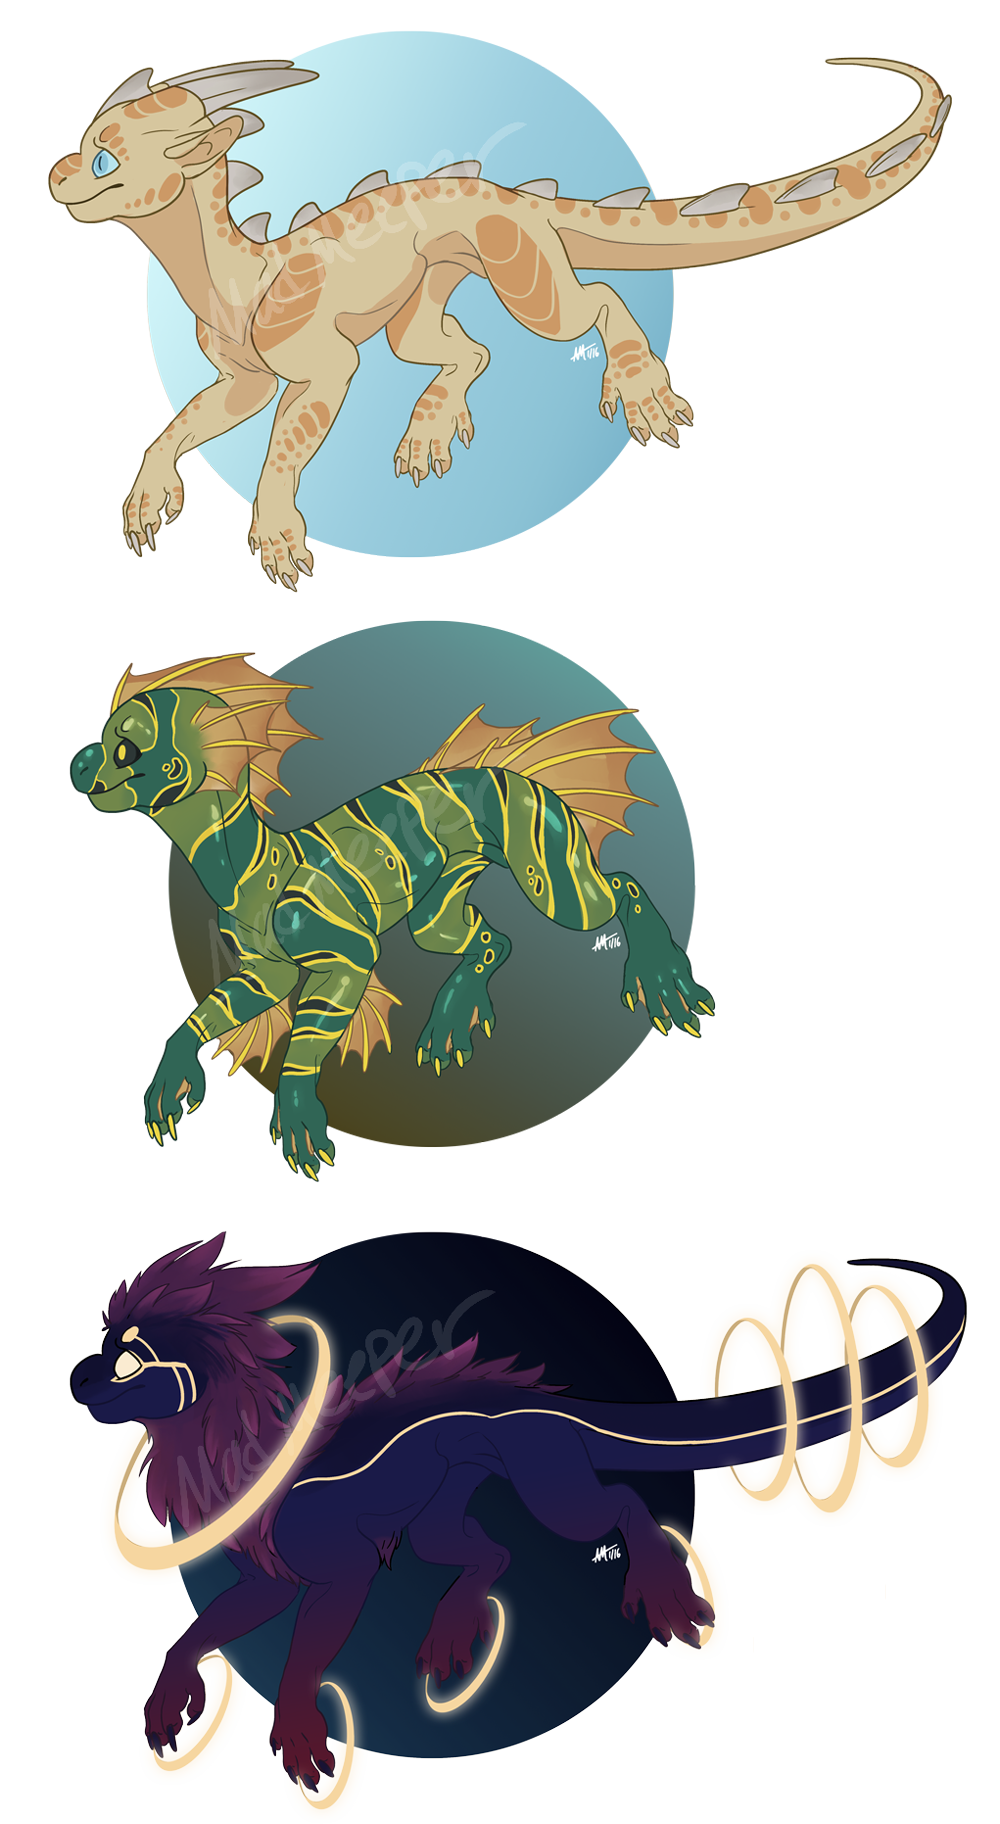 [ADOPT] 160117 Dragons (Batch 1)